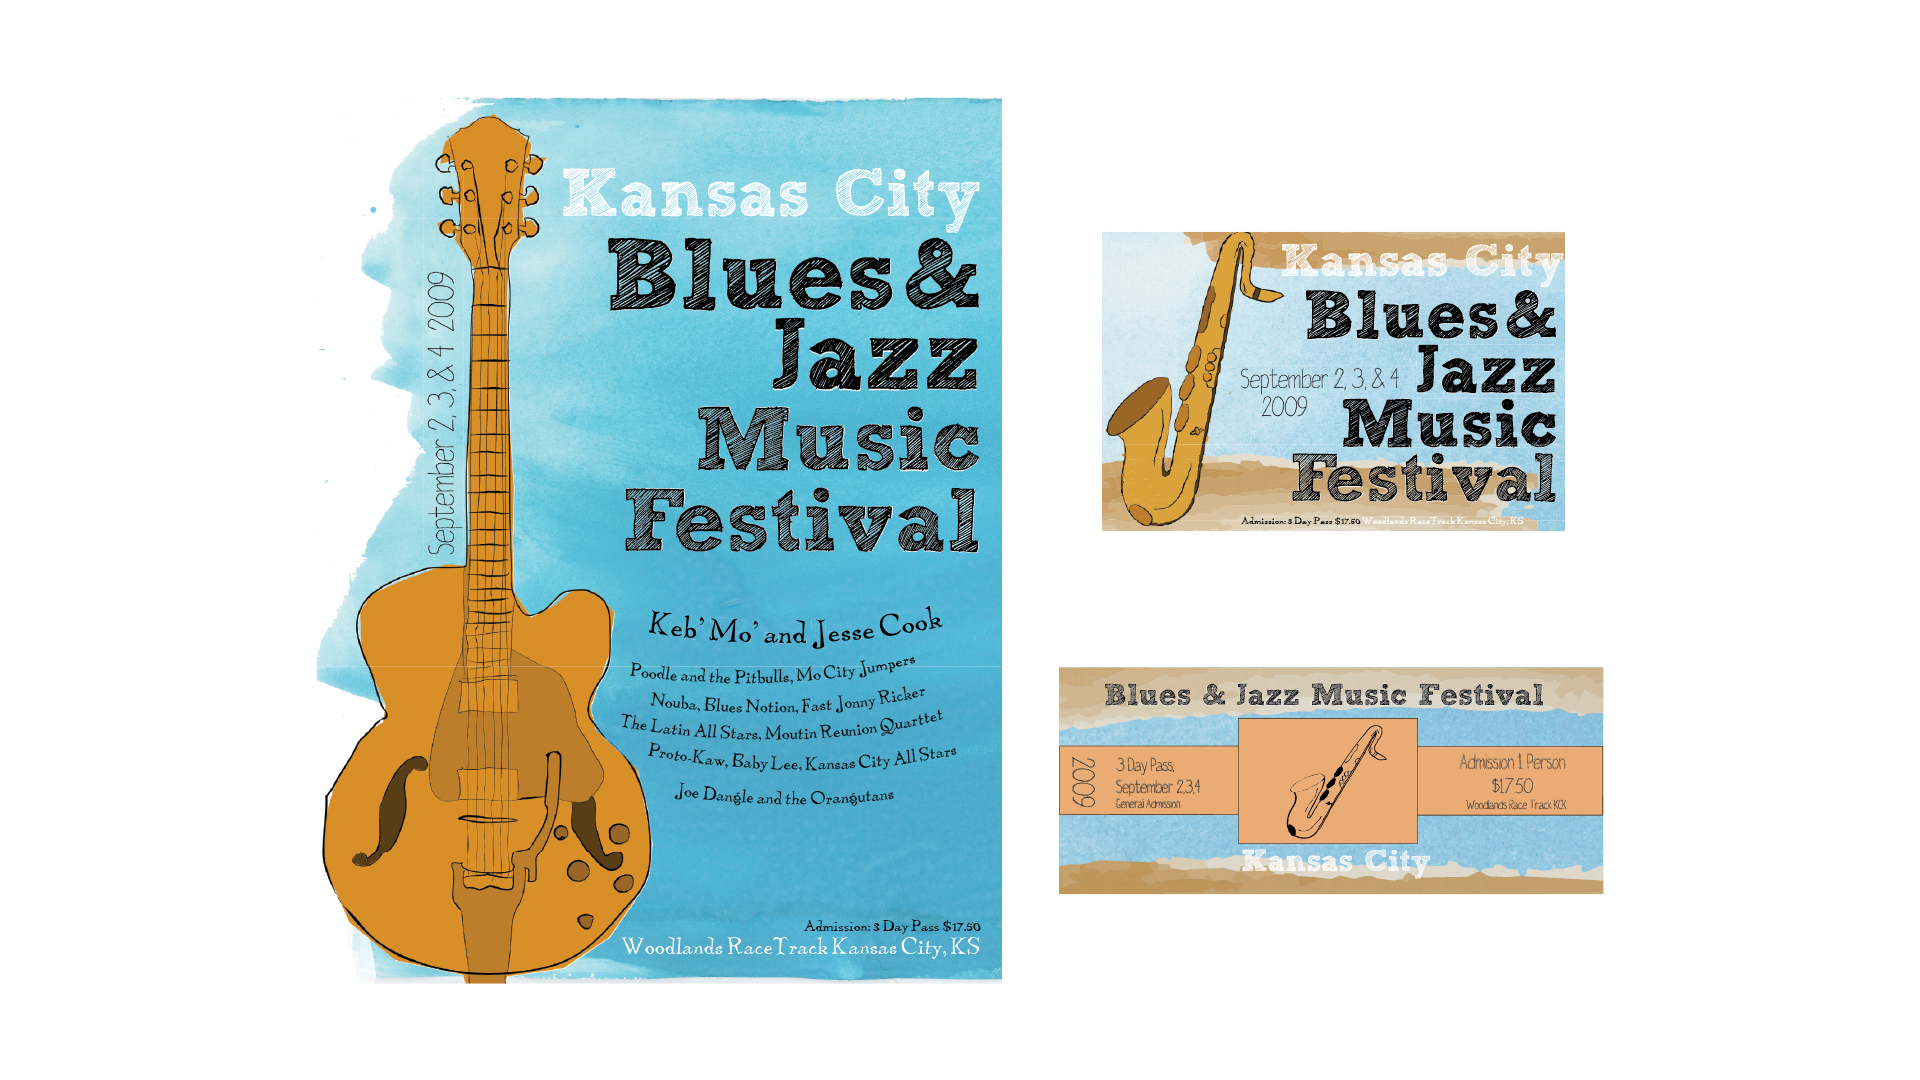 Kansas City Blues and Jazz Music Festival Collateral Materials